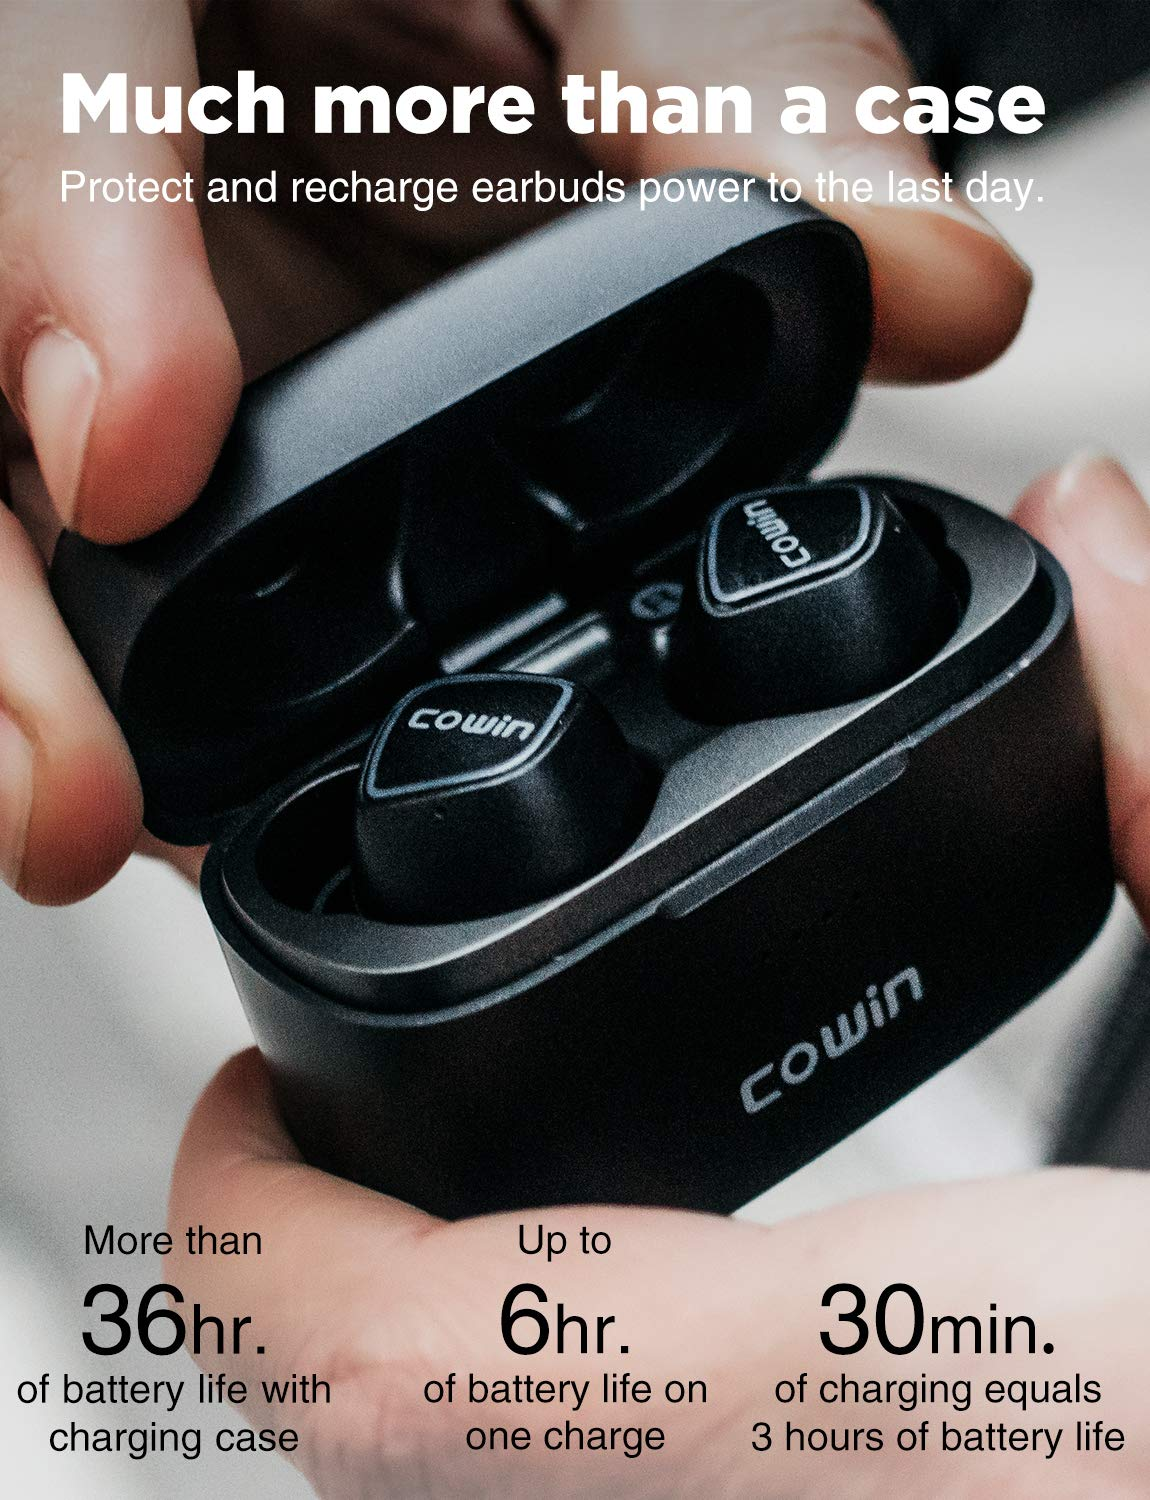 COWIN KY02 Upgraded Wireless Earbuds True Wireless Earbuds Bluetooth Headphones with Microphone Bluetooth Earbuds Stereo Calls Extra Bass Touch Control 36H for Workout Charging Case Included – Black